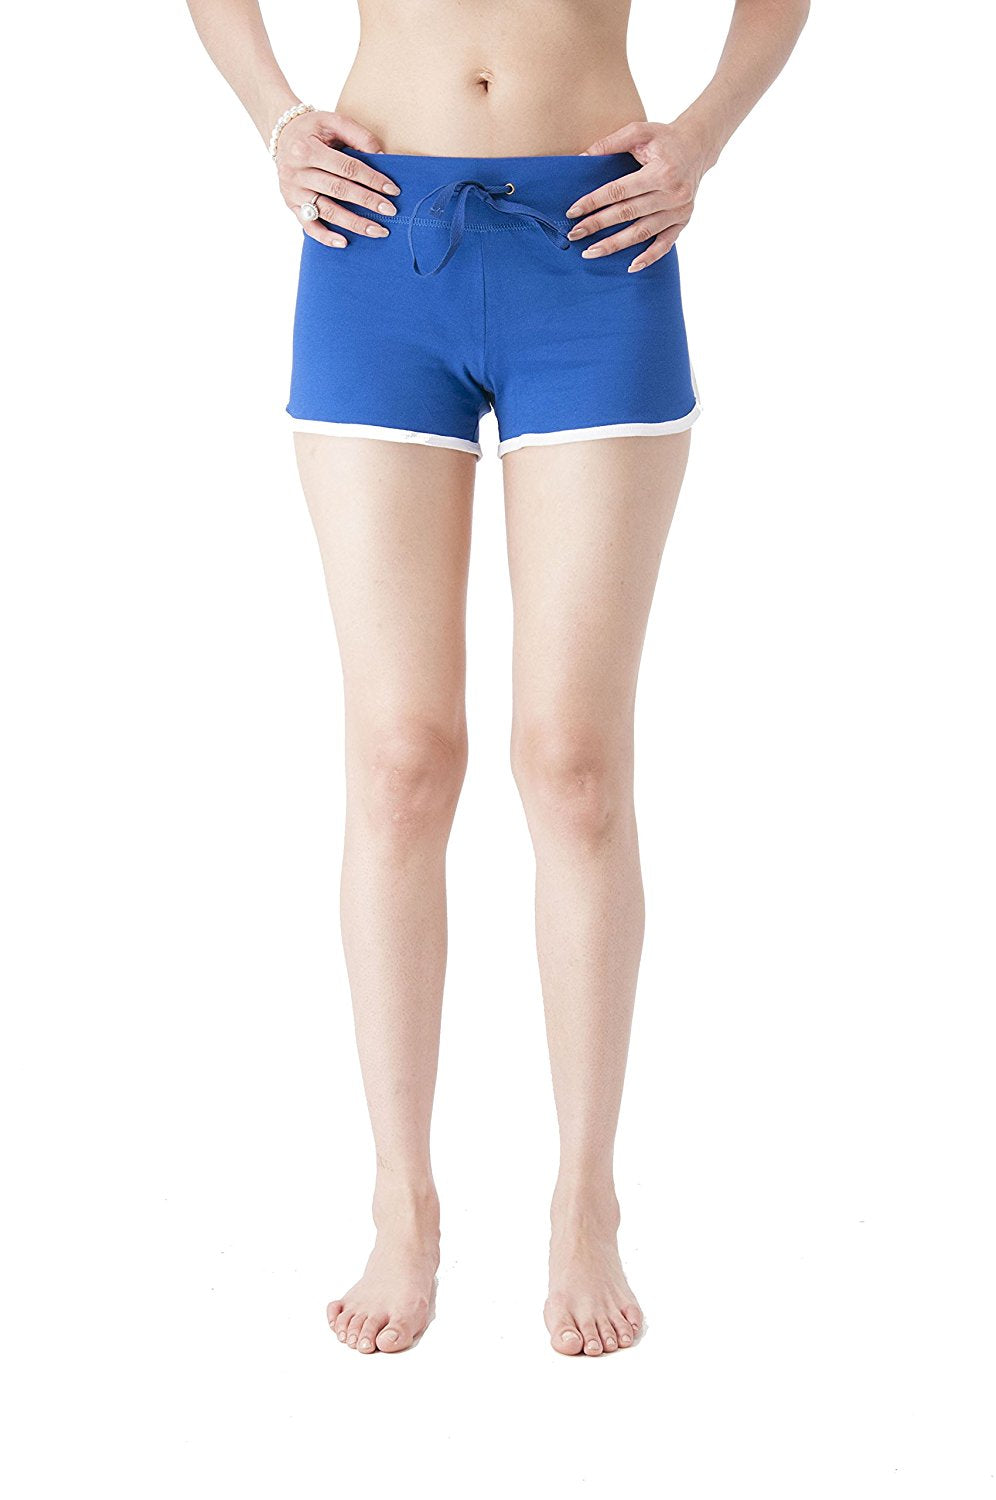 Hollywood Star Fashion Dolphin shorts with drawstrings